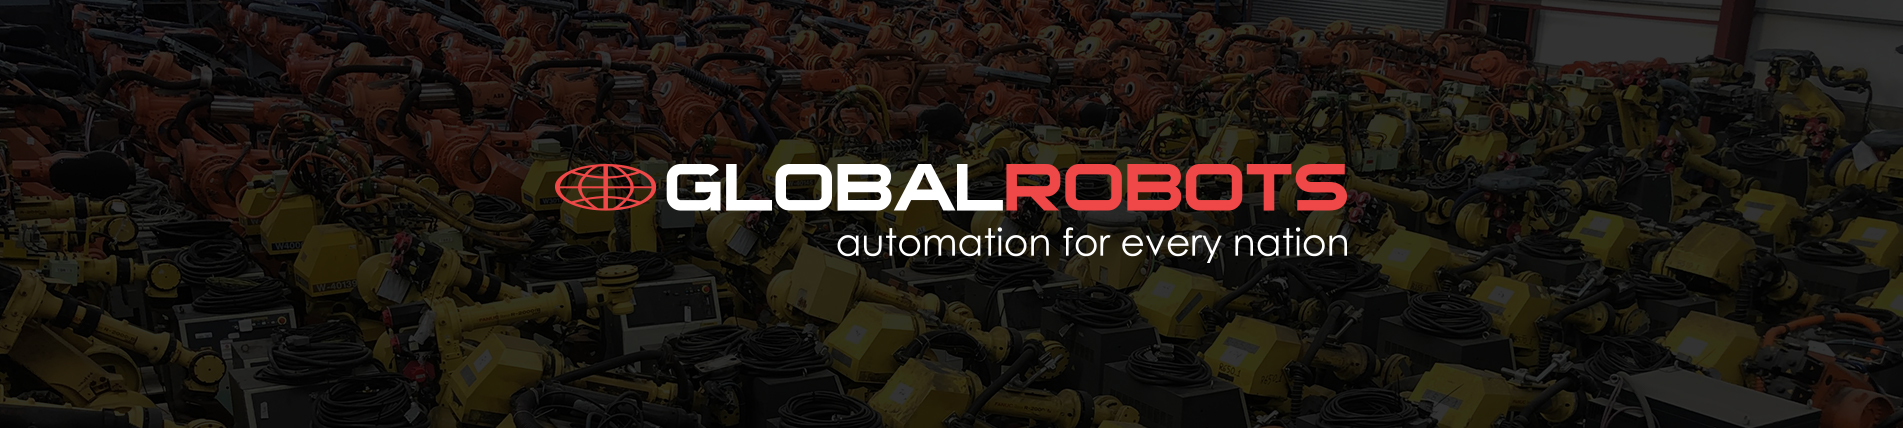 Global Robots stock